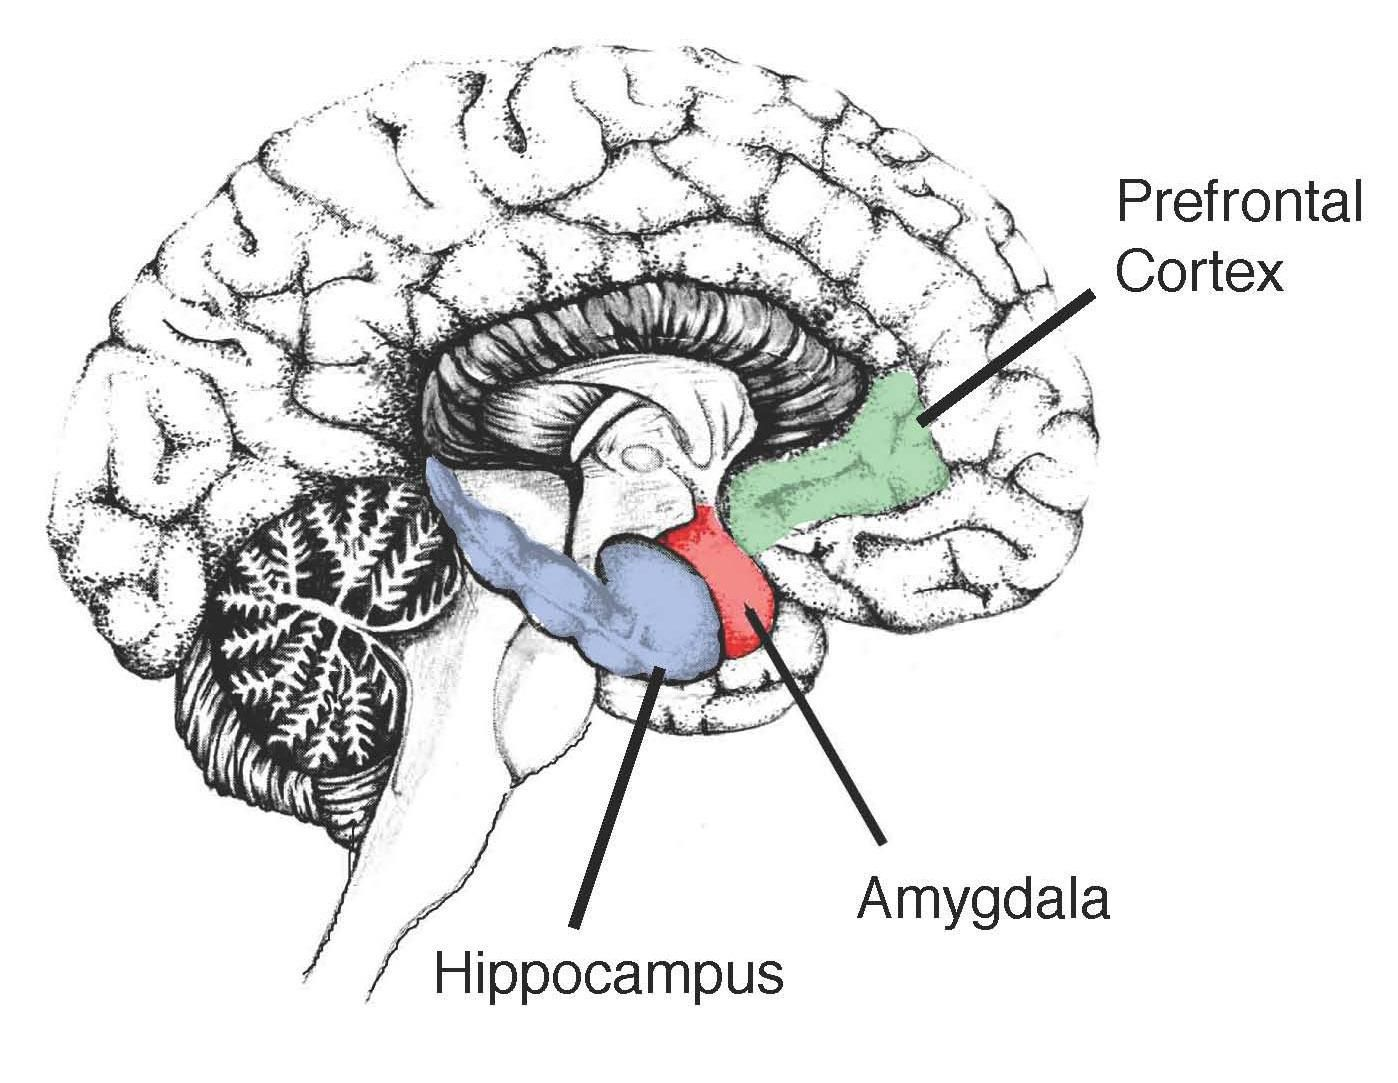 Image showing the hippocampus in the human brain 1441949b8610d5a344b image showing the hippocampus in the human brain ccuart Choice Image